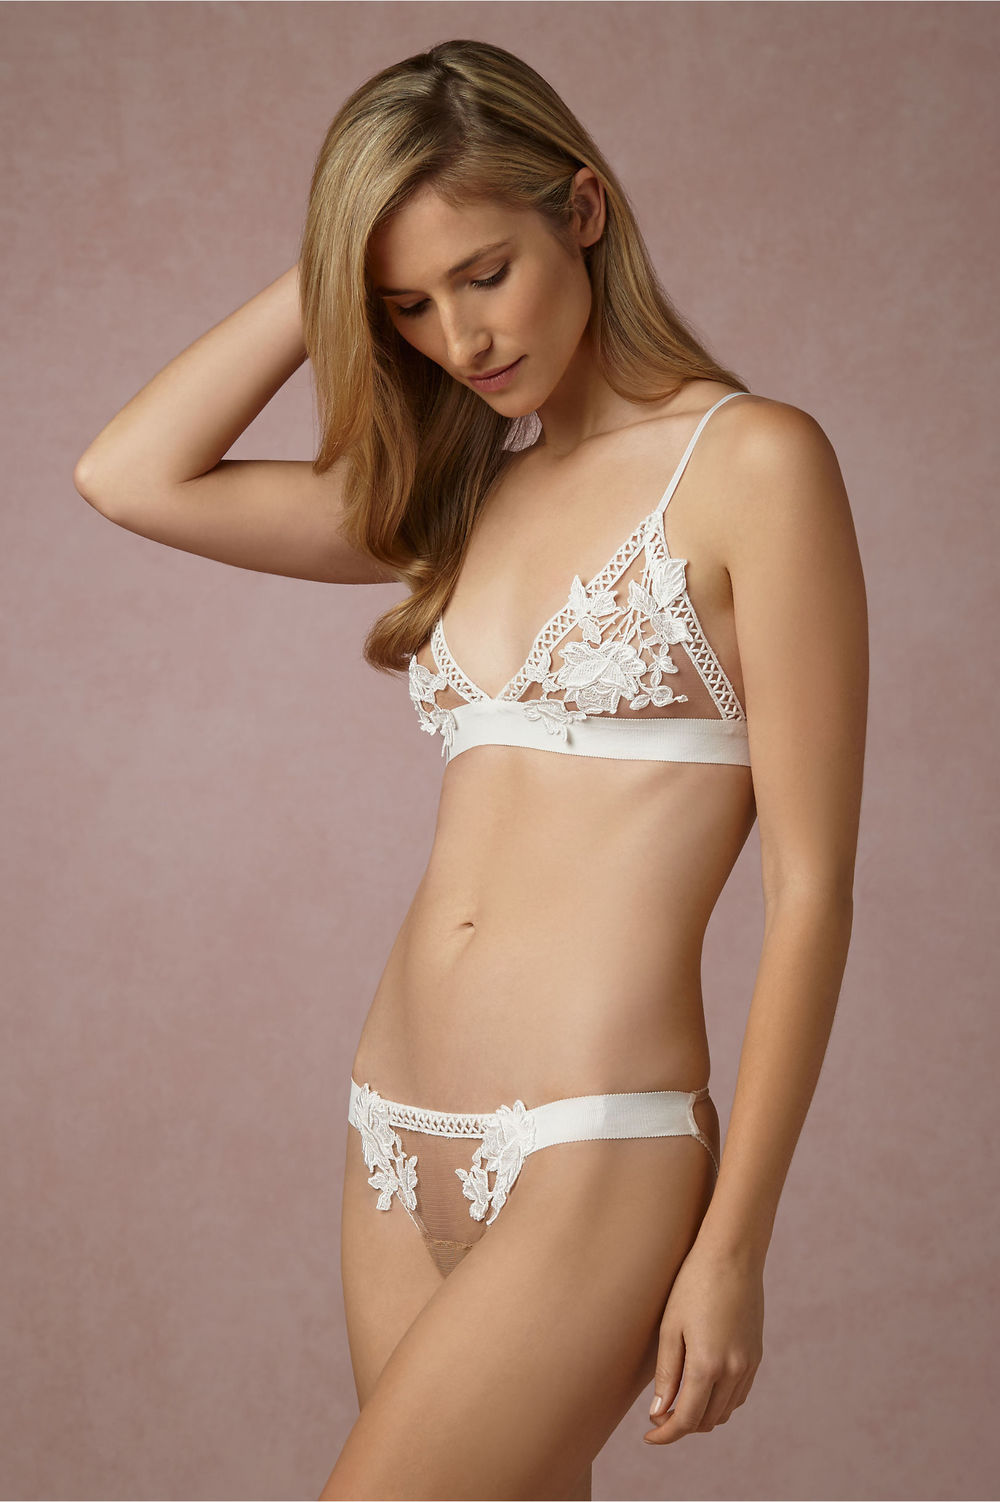 BHLDN bra $100 from $160, and panties $35 from $80